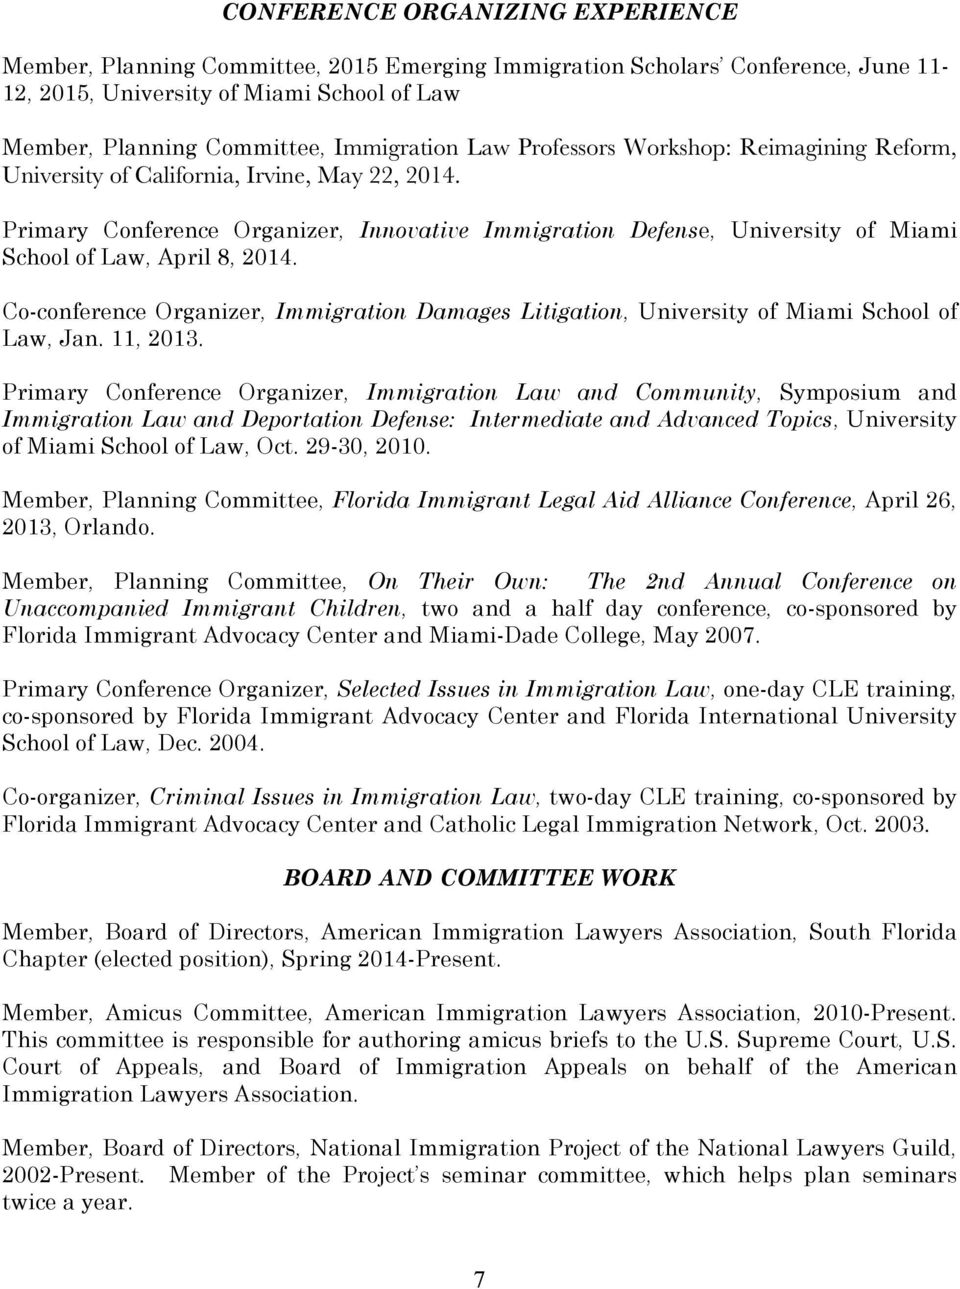 Primary Conference Organizer, Innovative Immigration Defense, University of Miami School of Law, April 8, 2014.